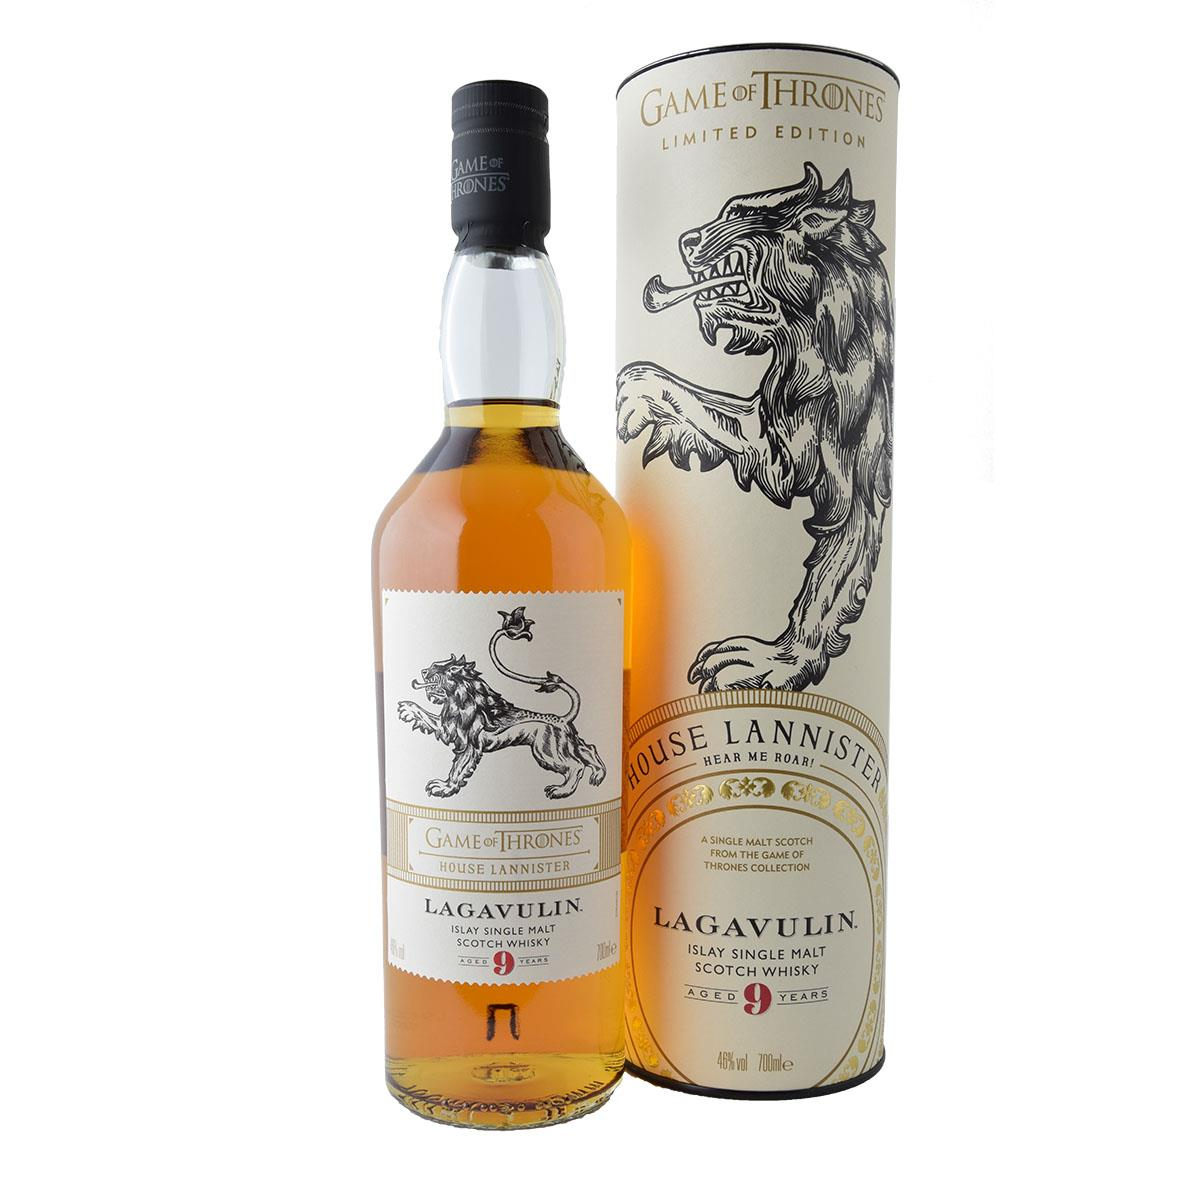 Lagavulin 9 y.o. Game of Thrones 700ml